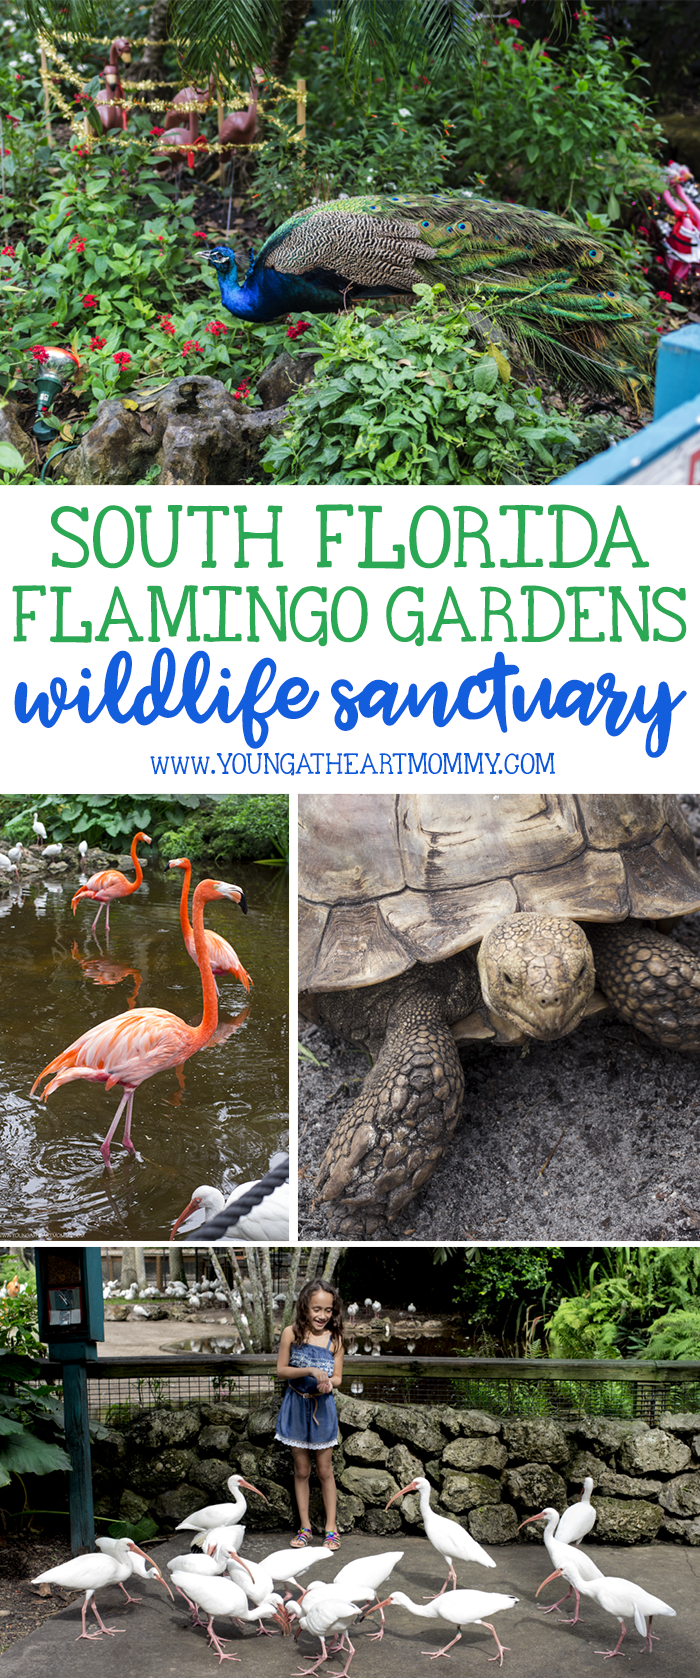 Explore The Great Outdoors At Flamingo Gardens In South Florida